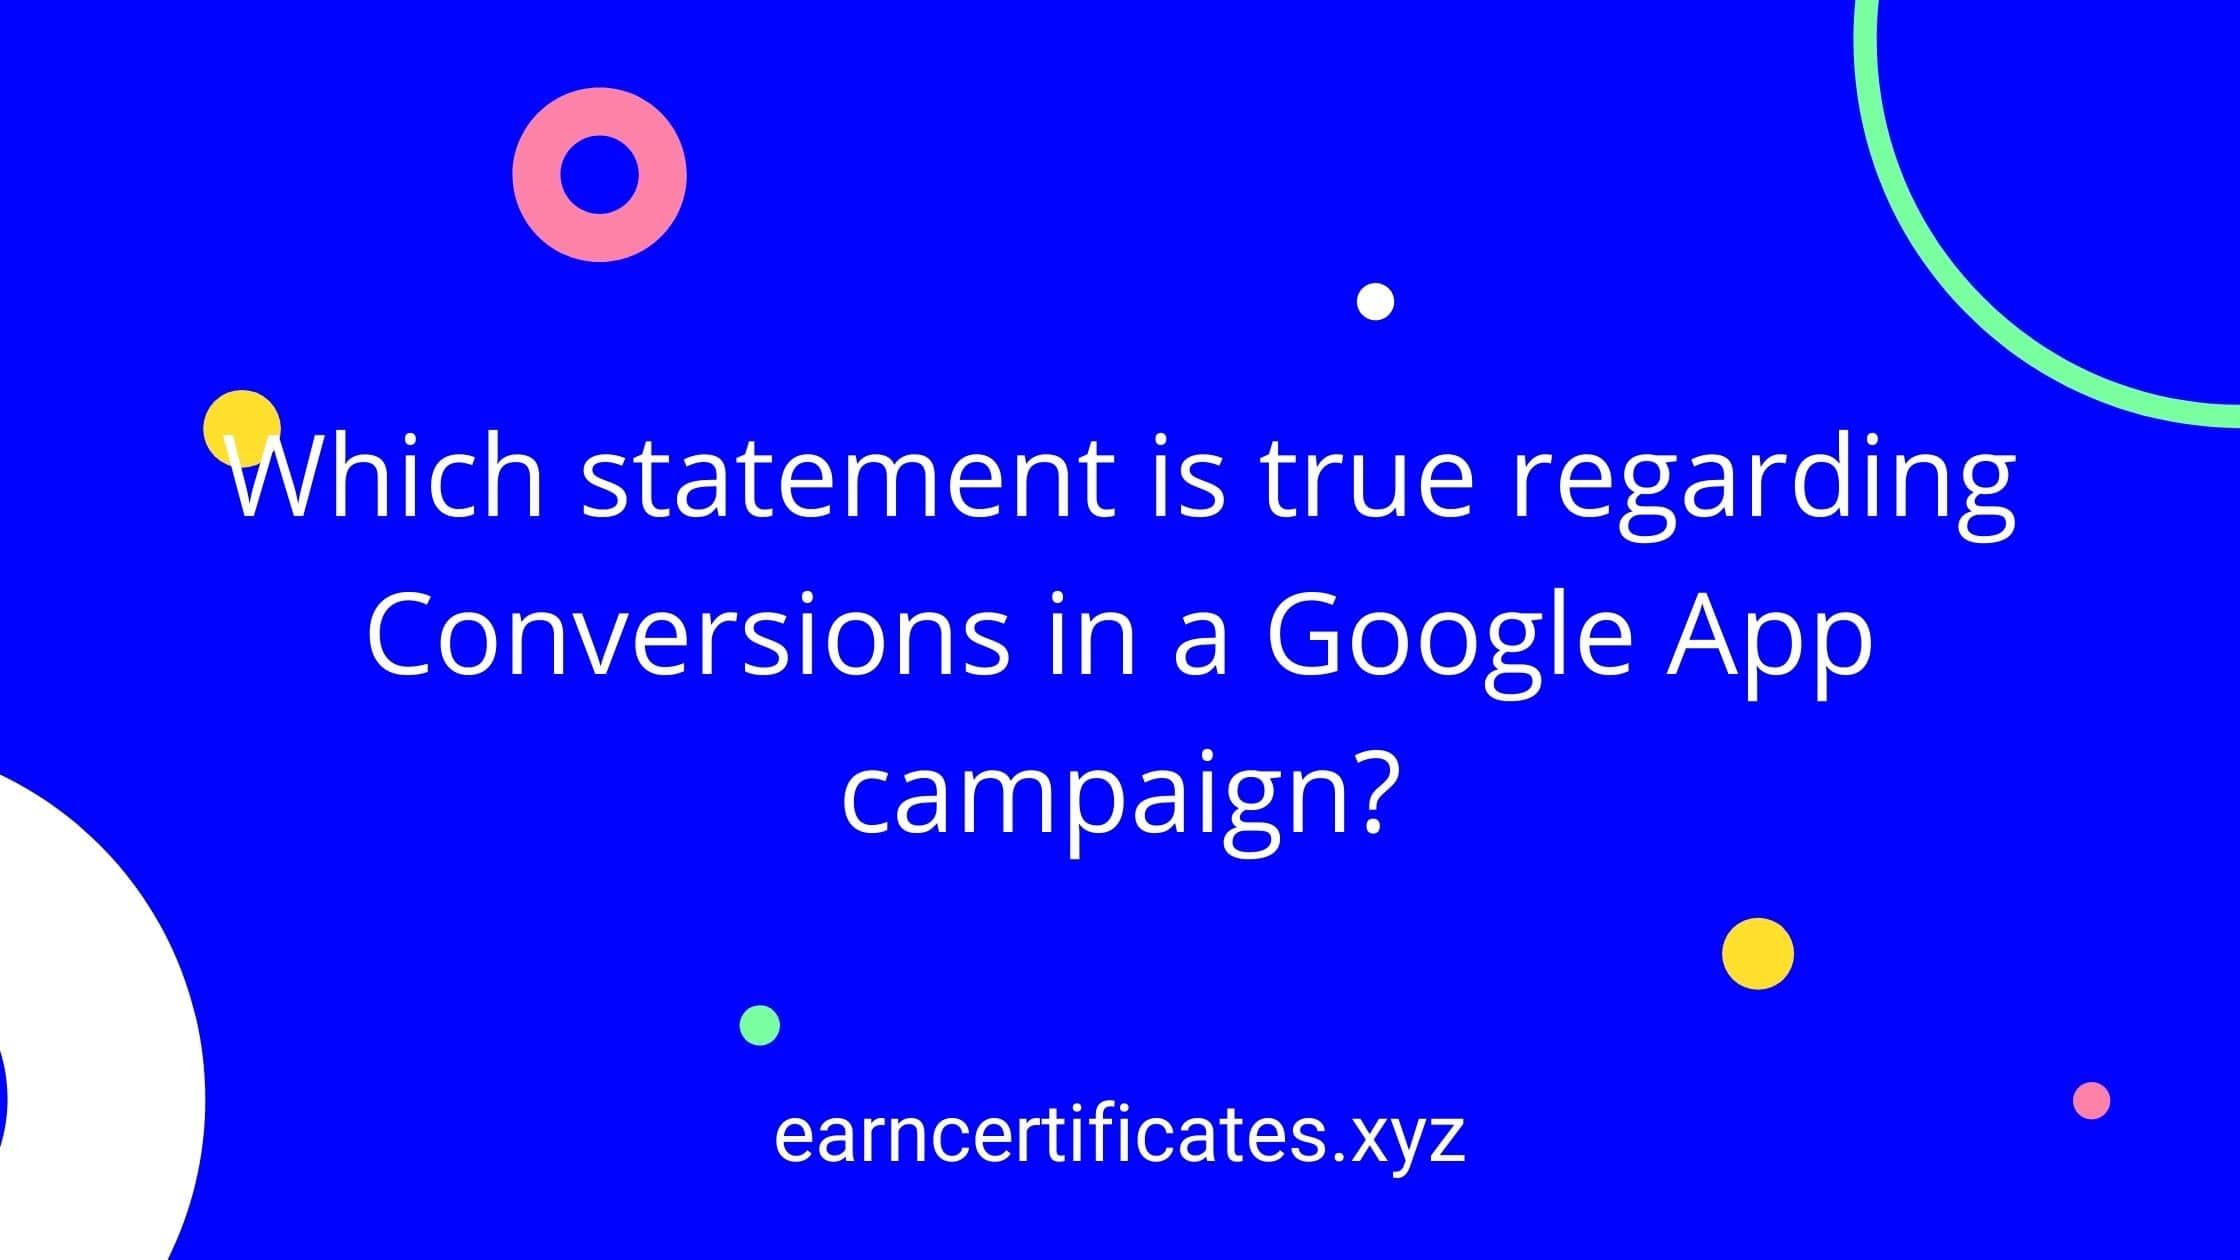 Which statement is true regarding Conversions in a Google App campaign?